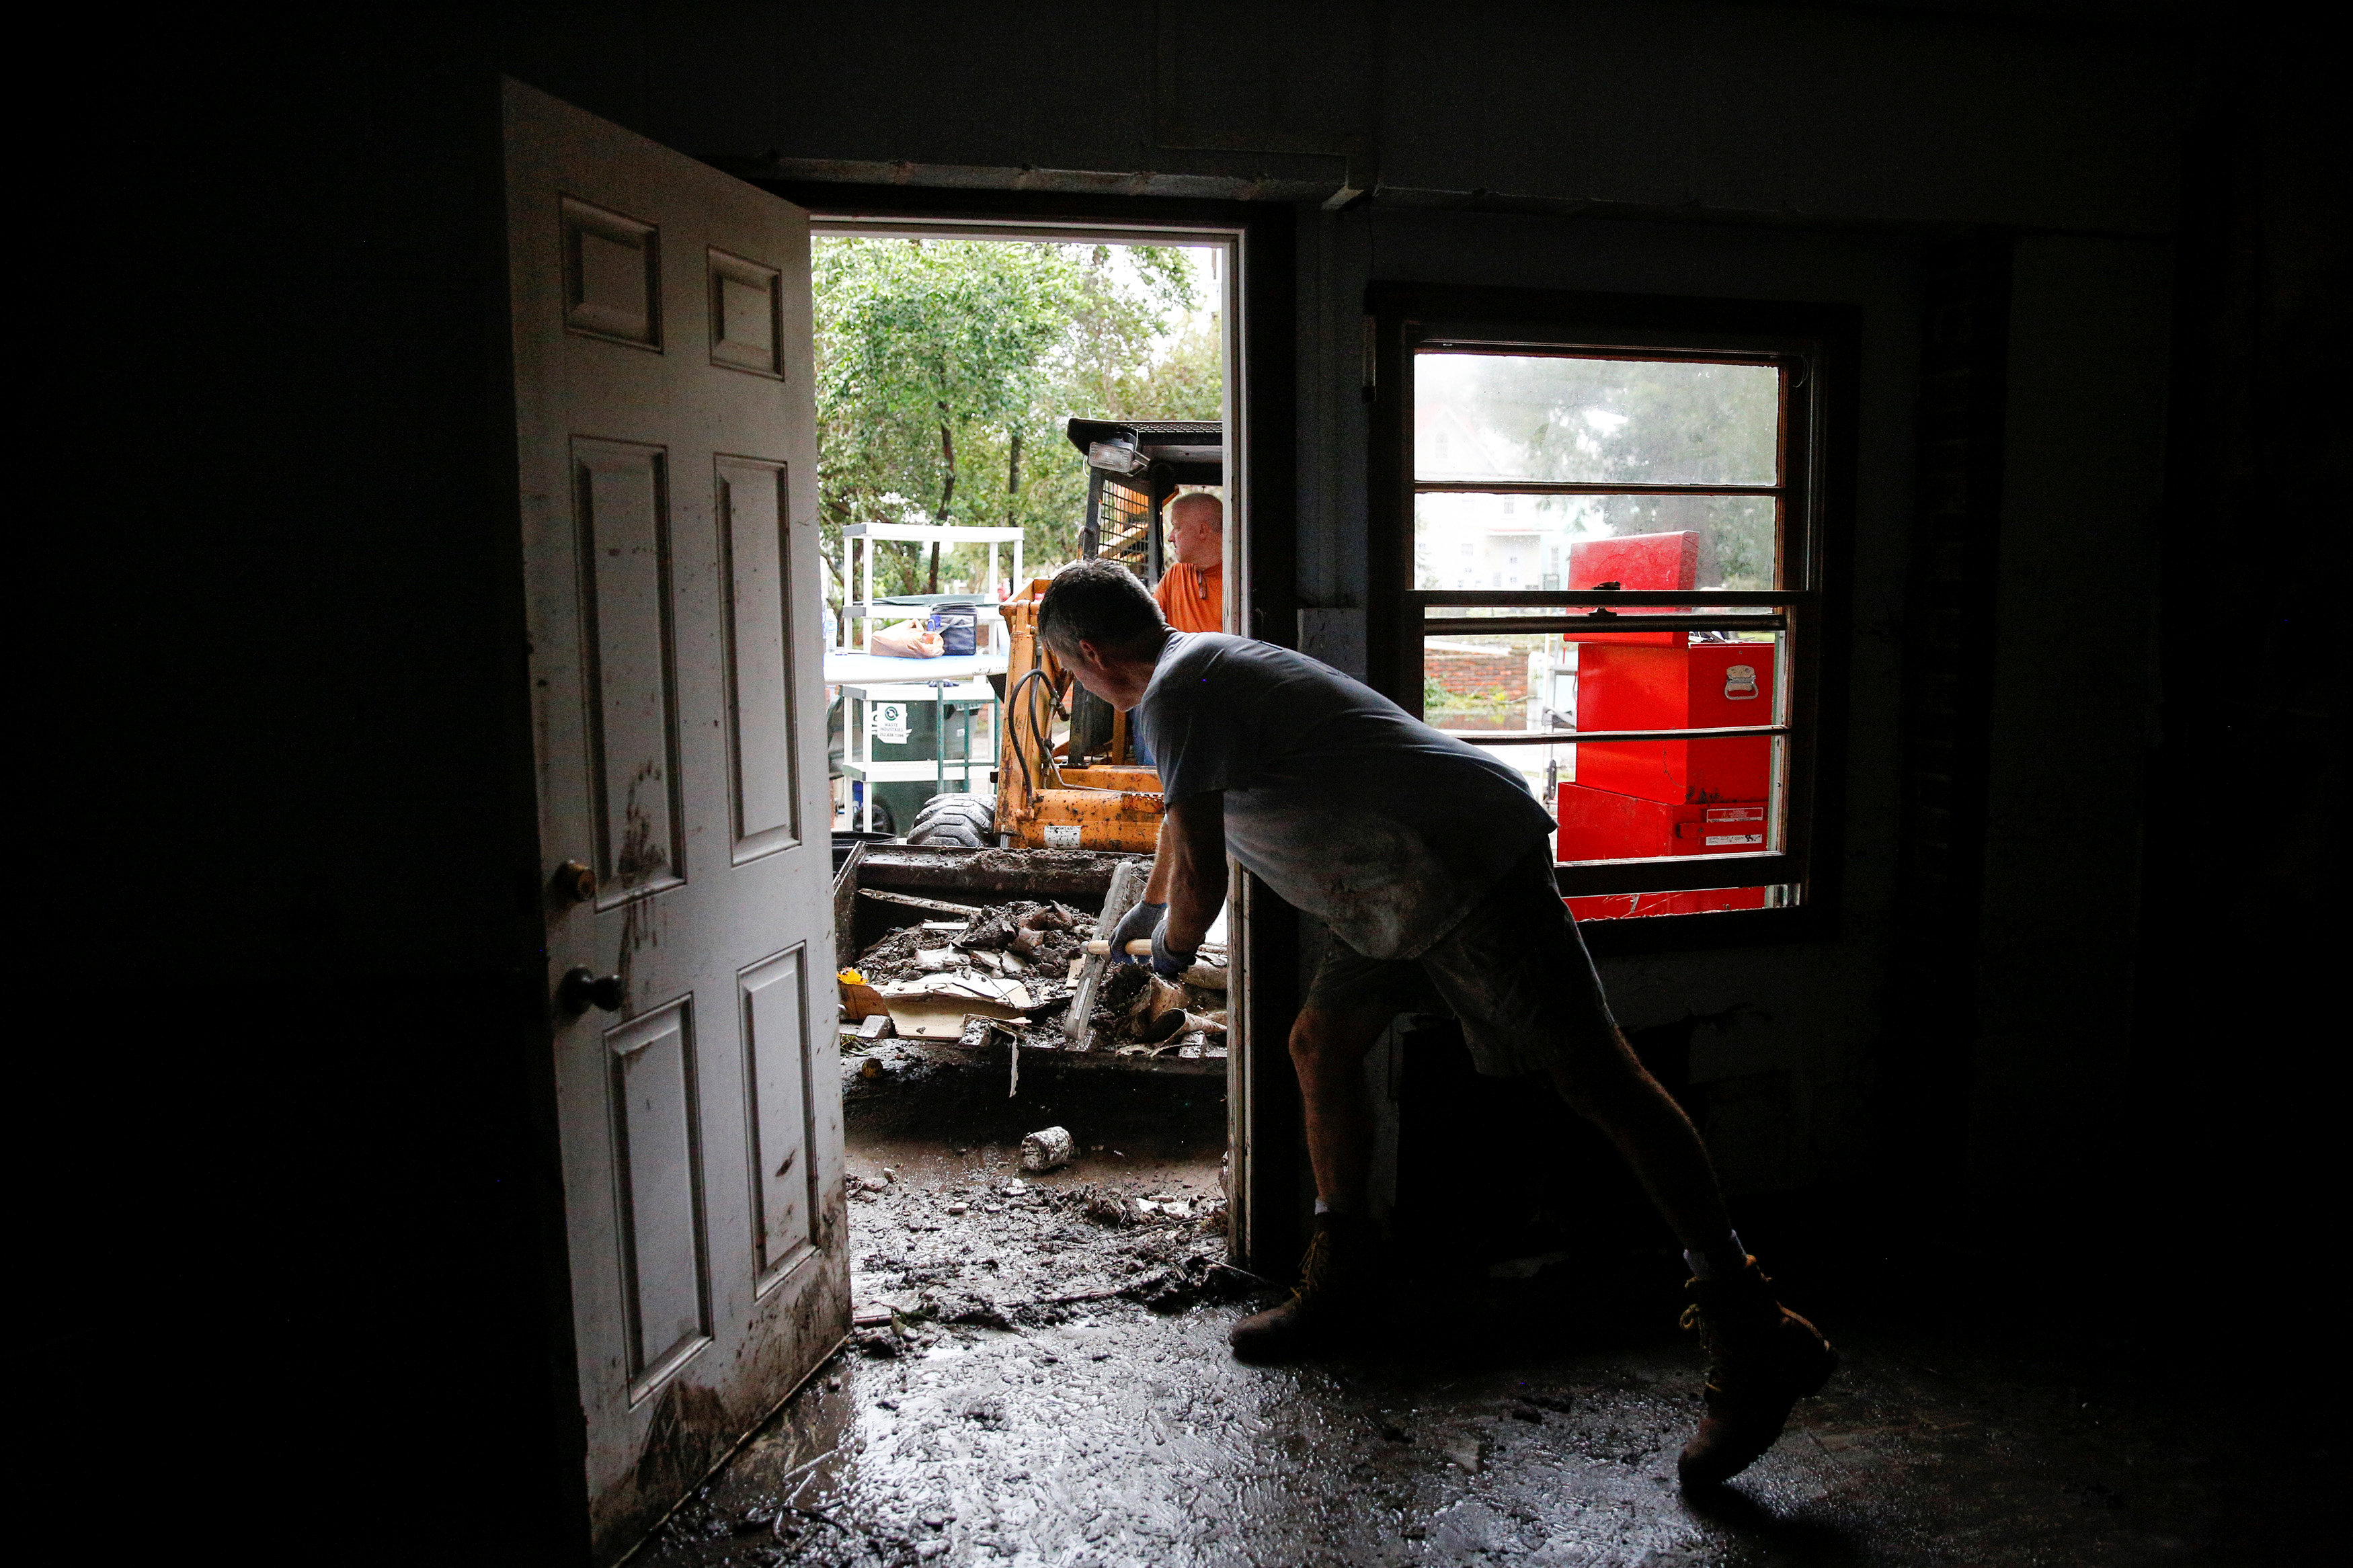 People clean their house after the pass of Hurricane Florence in New Bern, North Carolina